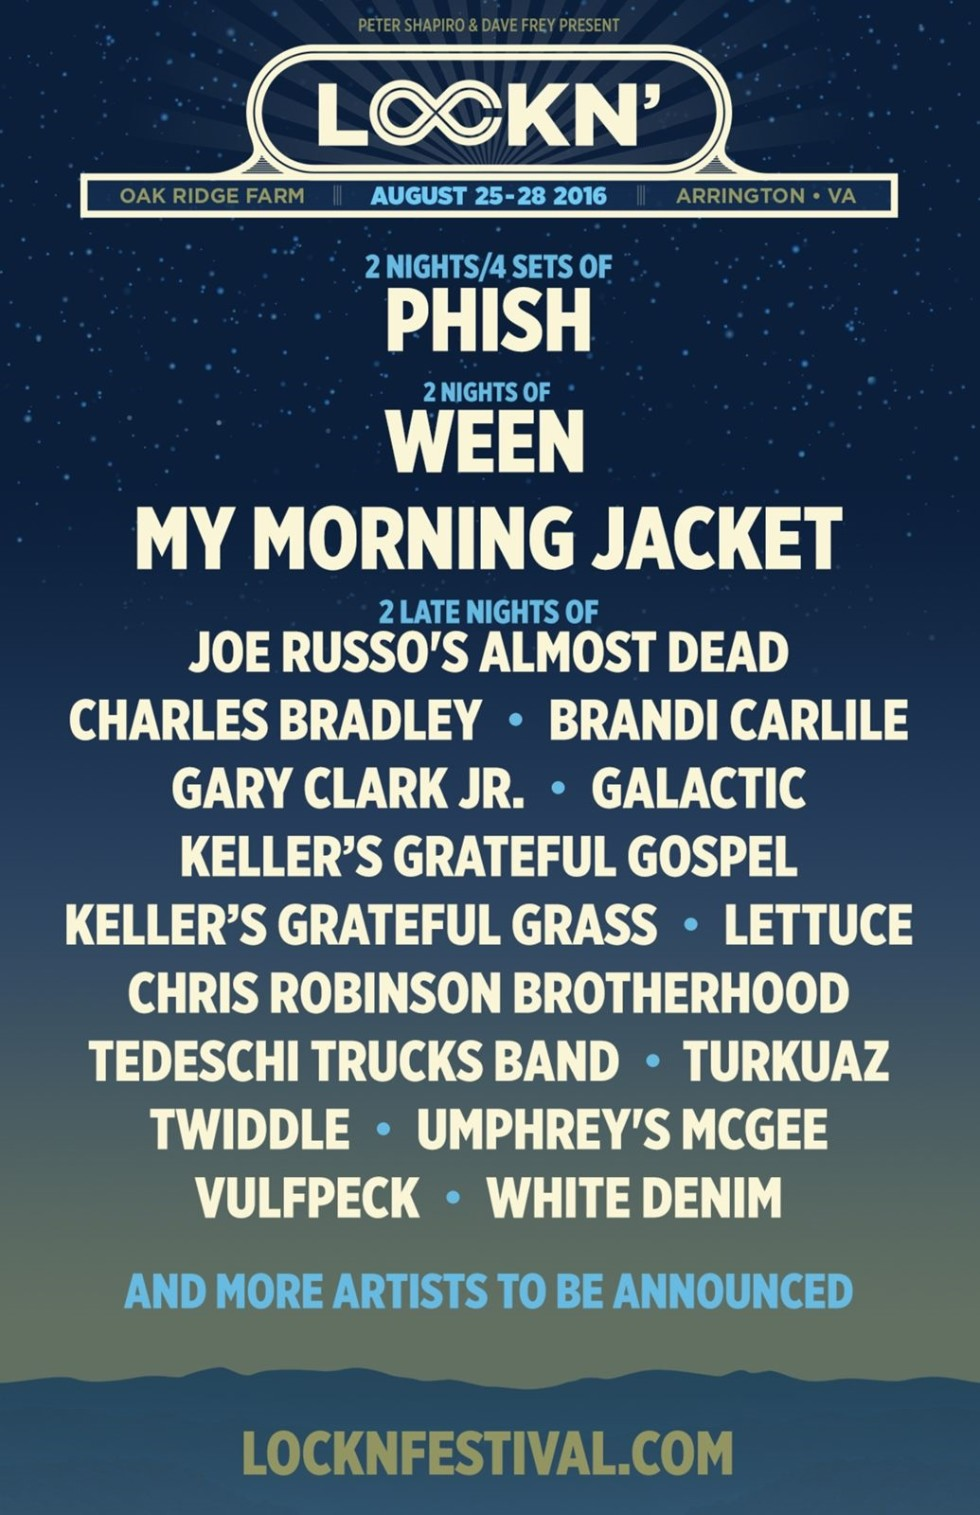 Lockn MusicLockn Music Festival 2016 lineup. Headliners include: Phish, My Morning Jacket and Ween.